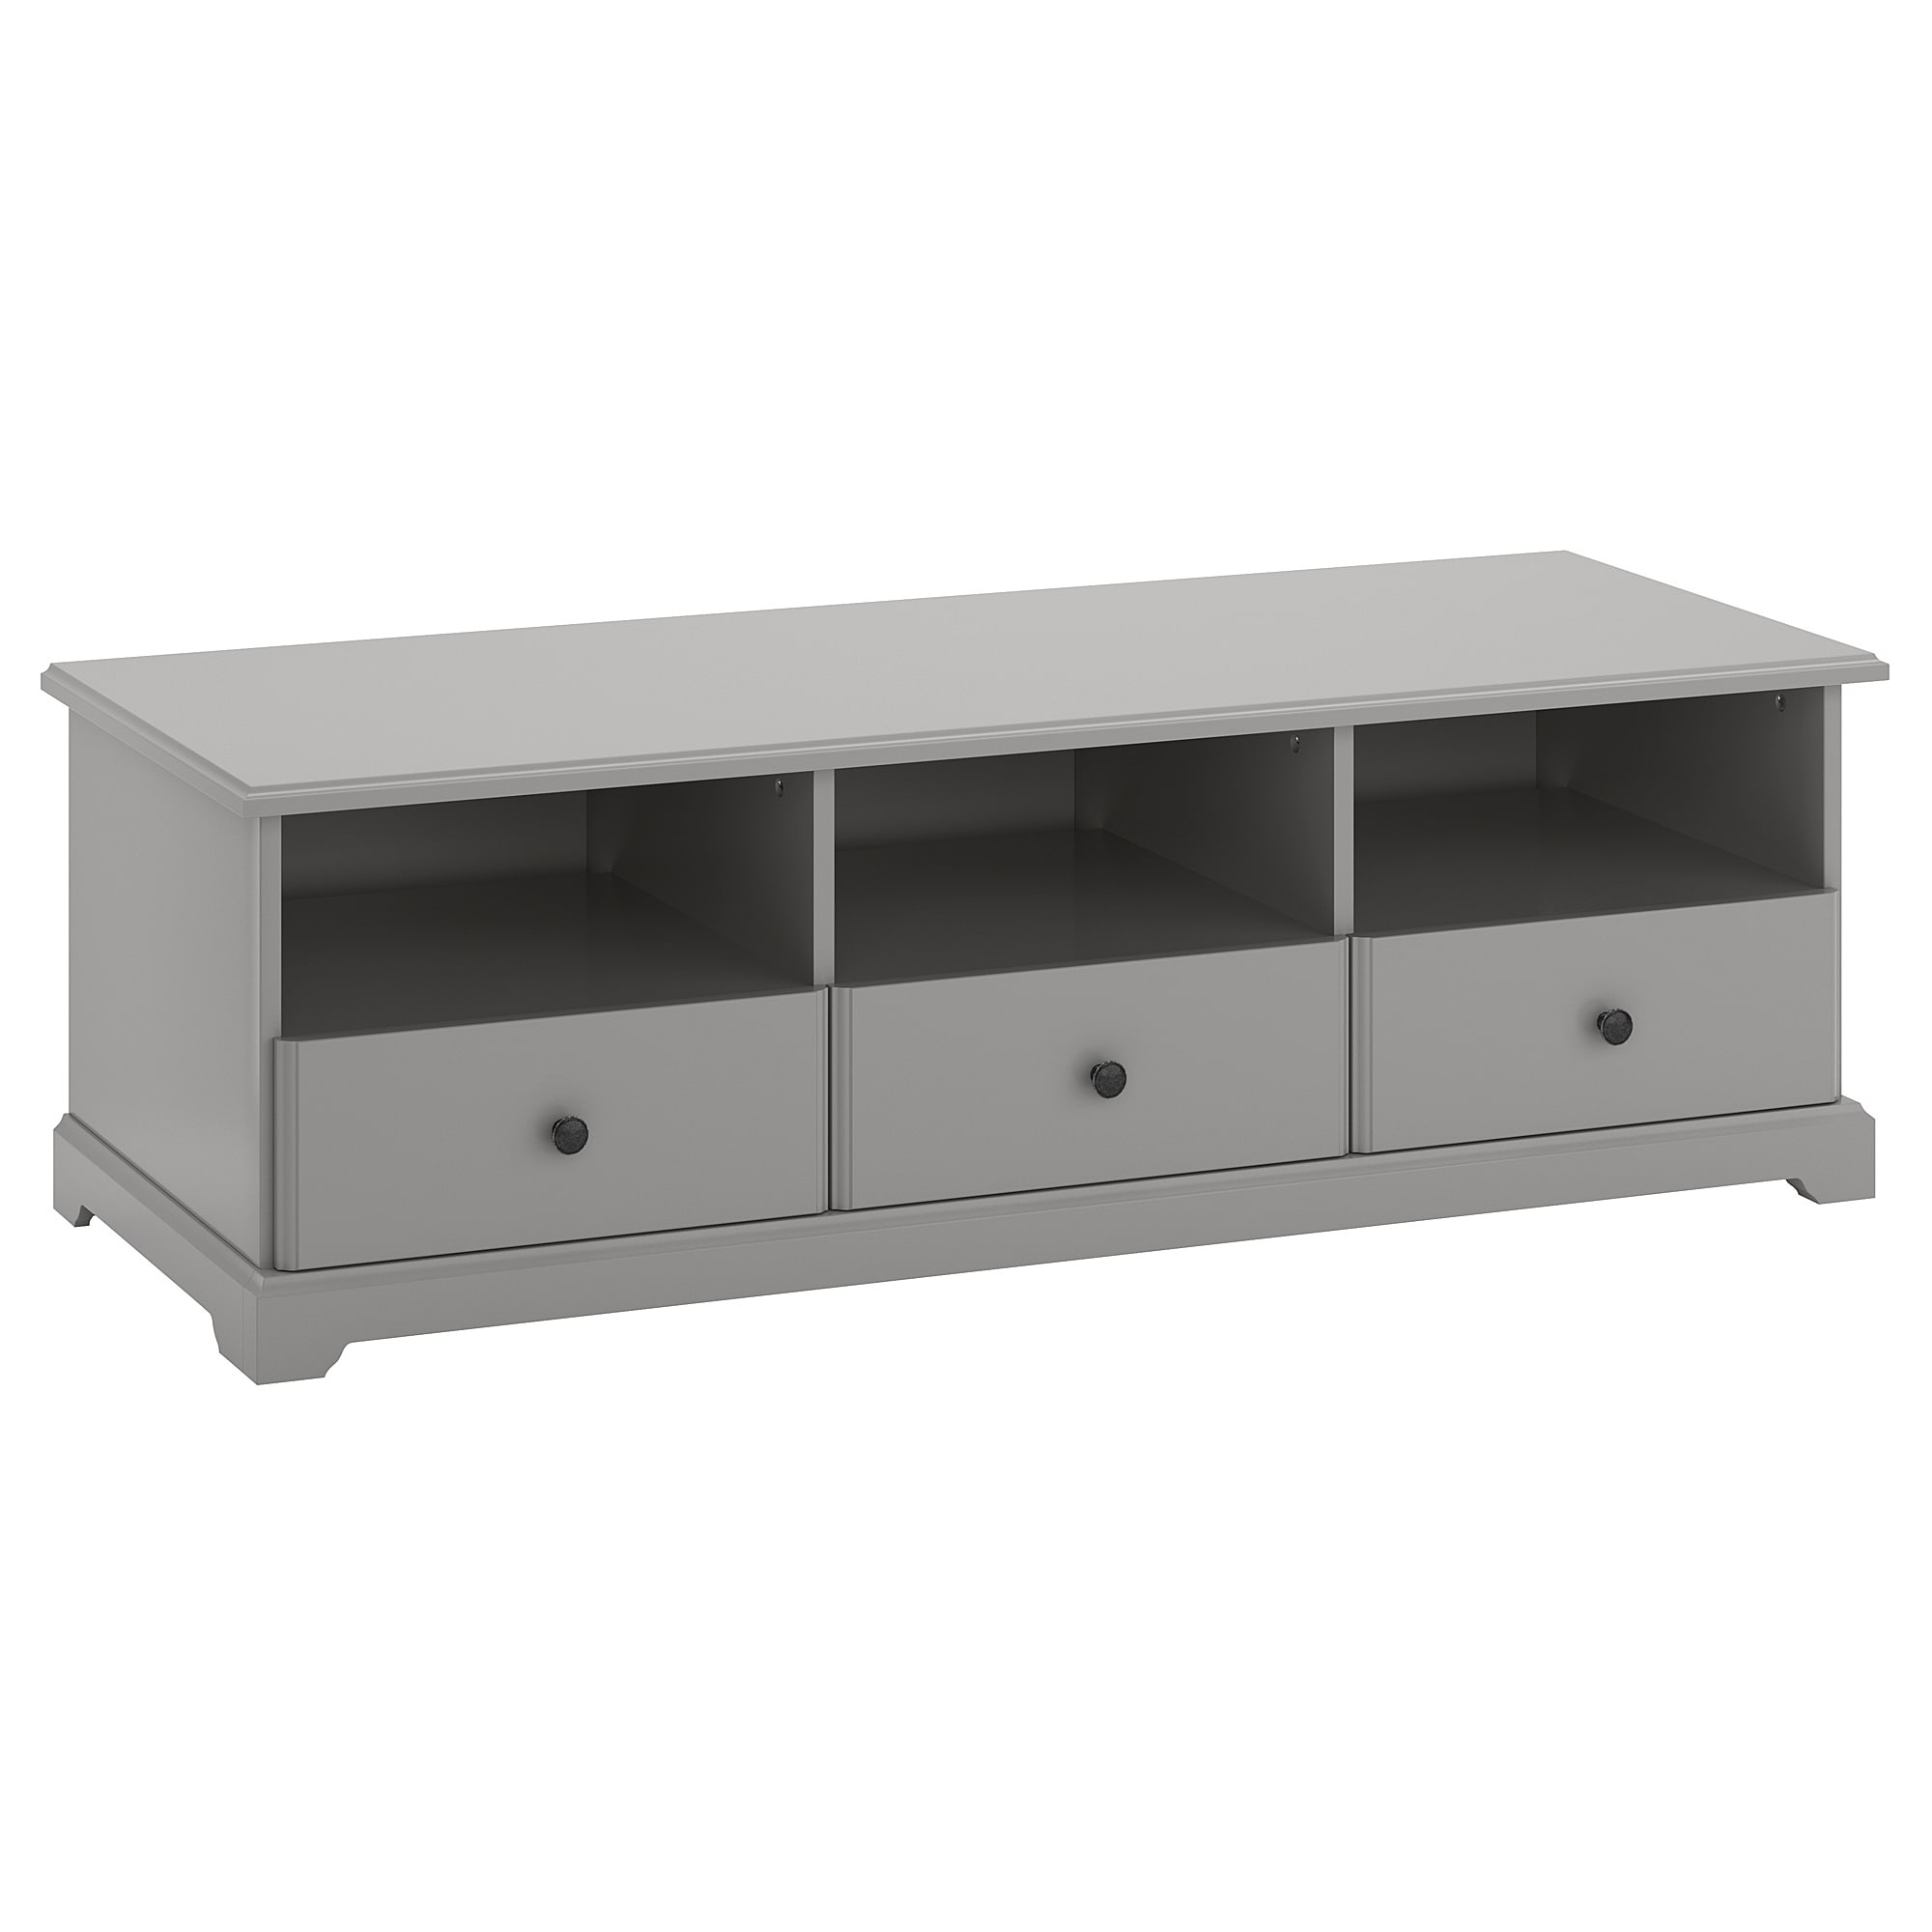 Ikea Tv Console Tables In Current Liatorp Tv Bench Grey 145 X 49 X 45 Cm – Ikea (Gallery 7 of 20)